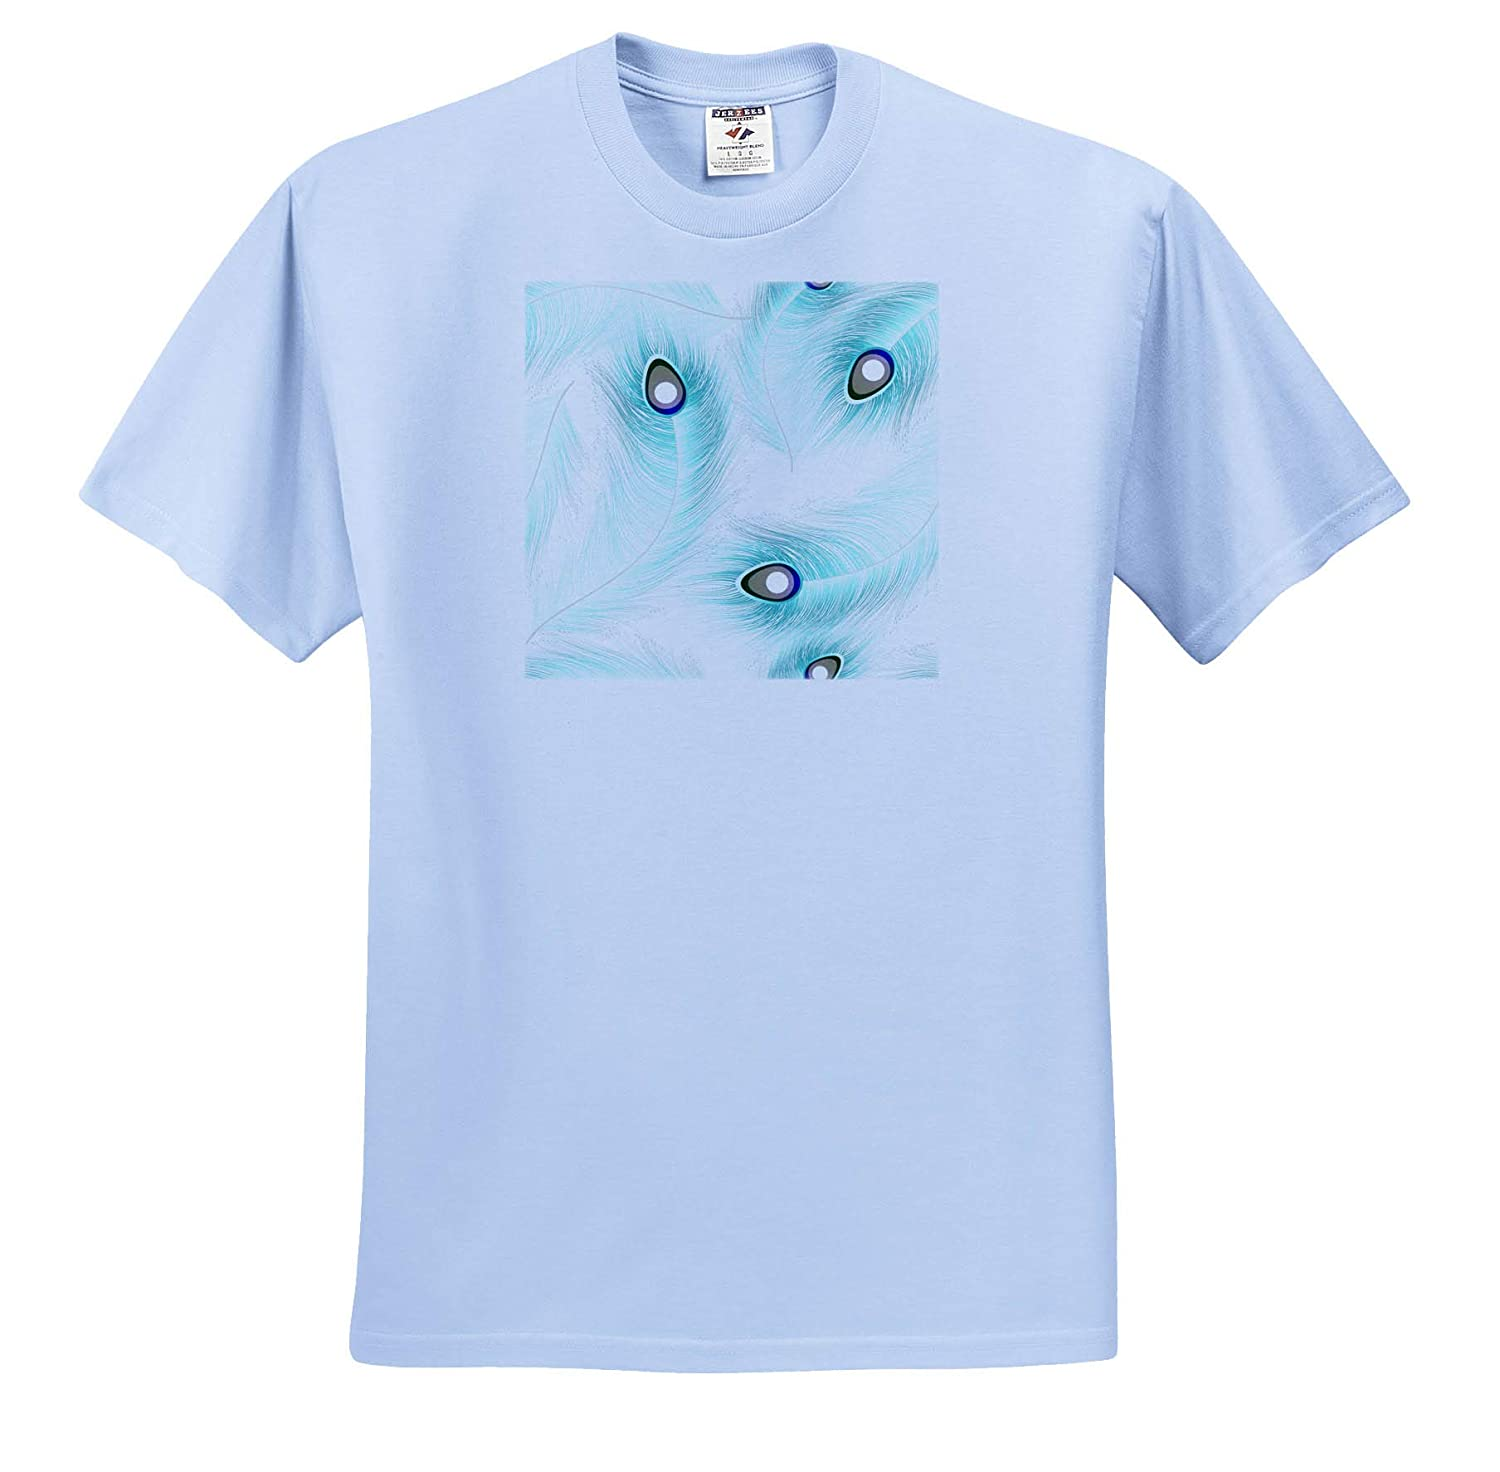 ts/_316239 3dRose Anne Marie Baugh Patterns Adult T-Shirt XL Pretty Aqua Peacock Feathers Pattern